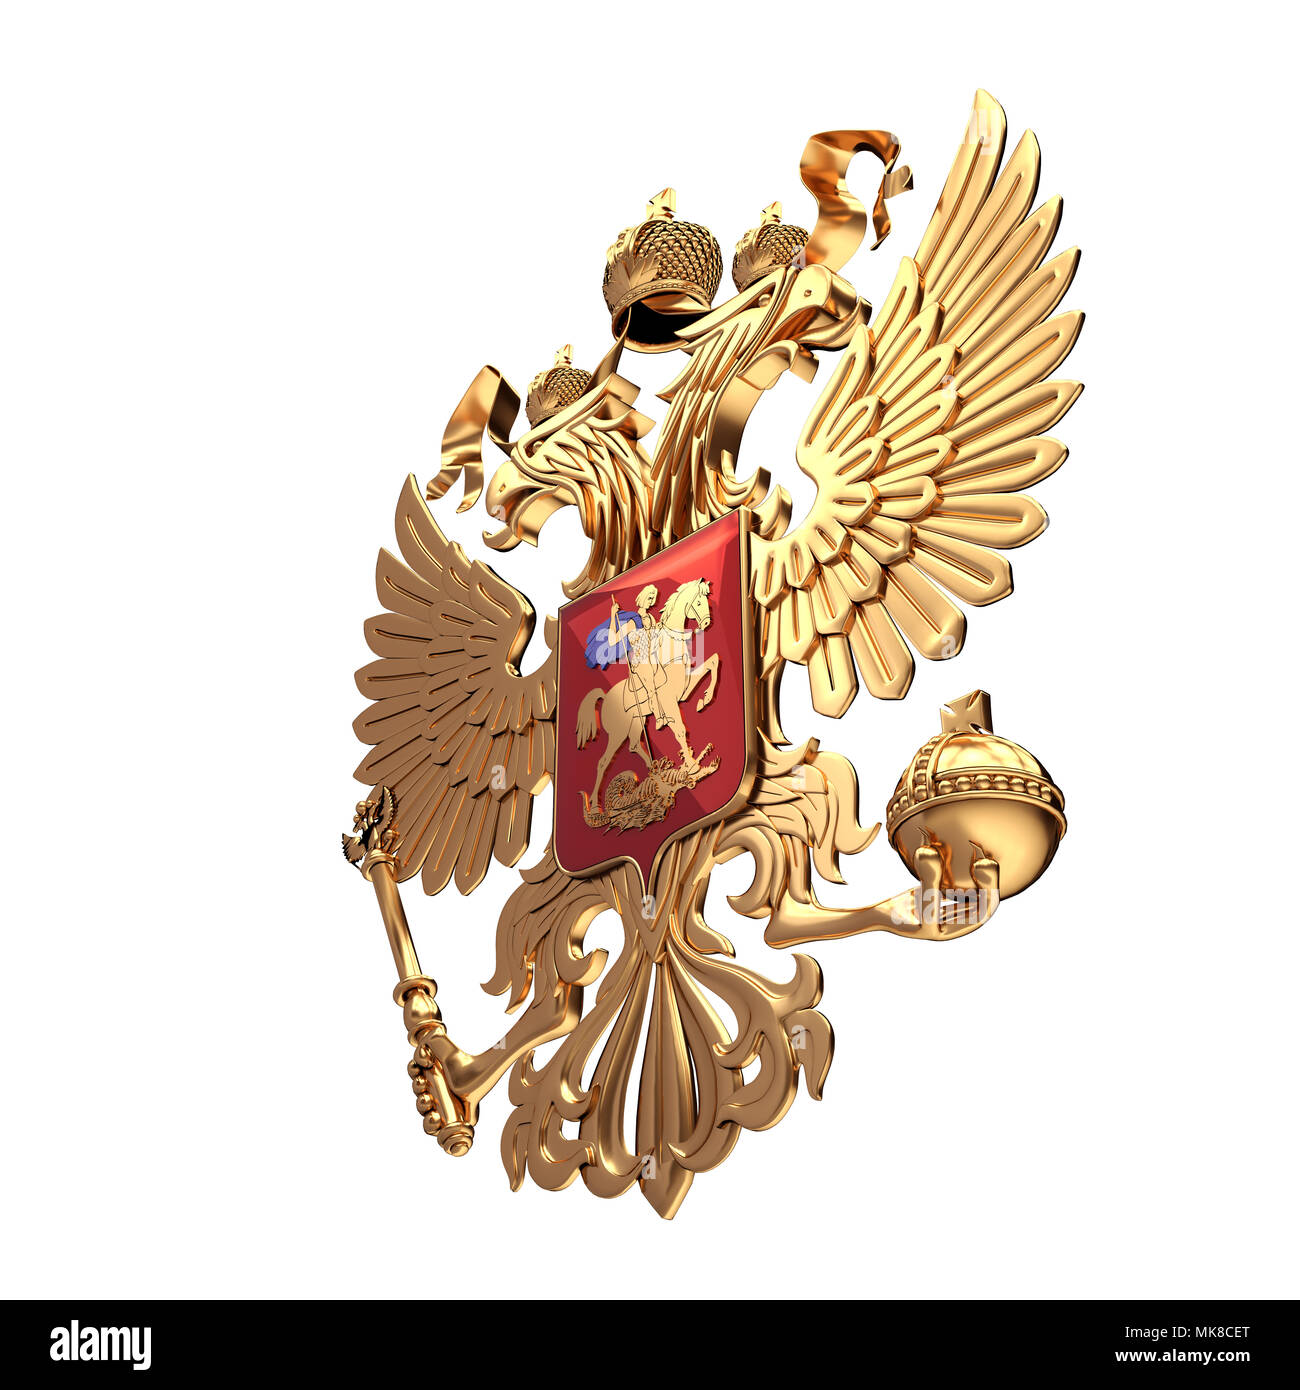 Coat Of Arms Of Russia With Two Headed Eagle Golden Symbol Of